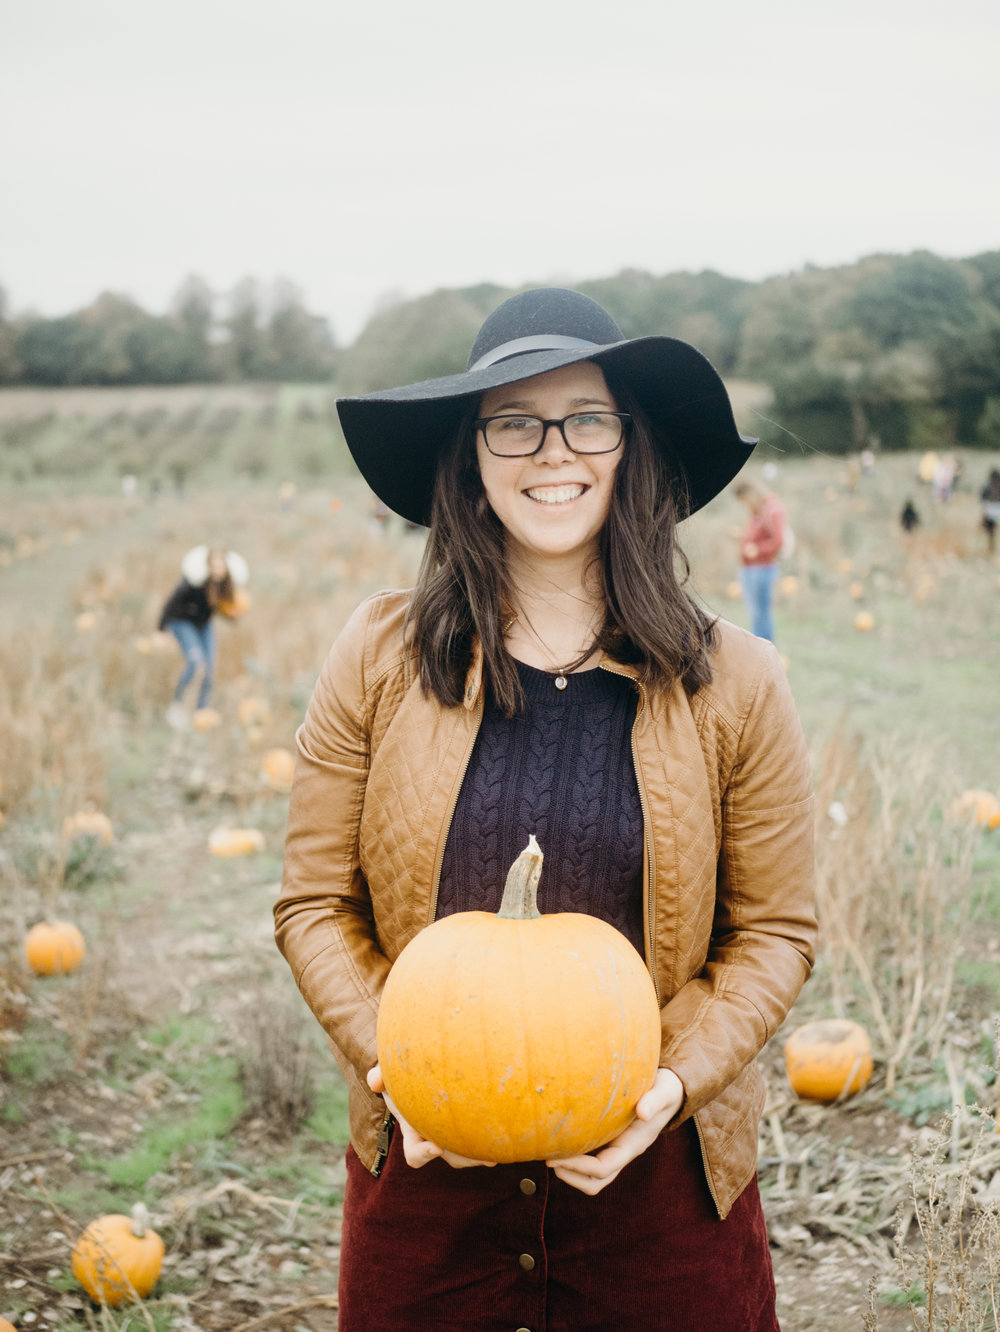 2019 Autumn Bucket List - Visit the Pumpkin Patch